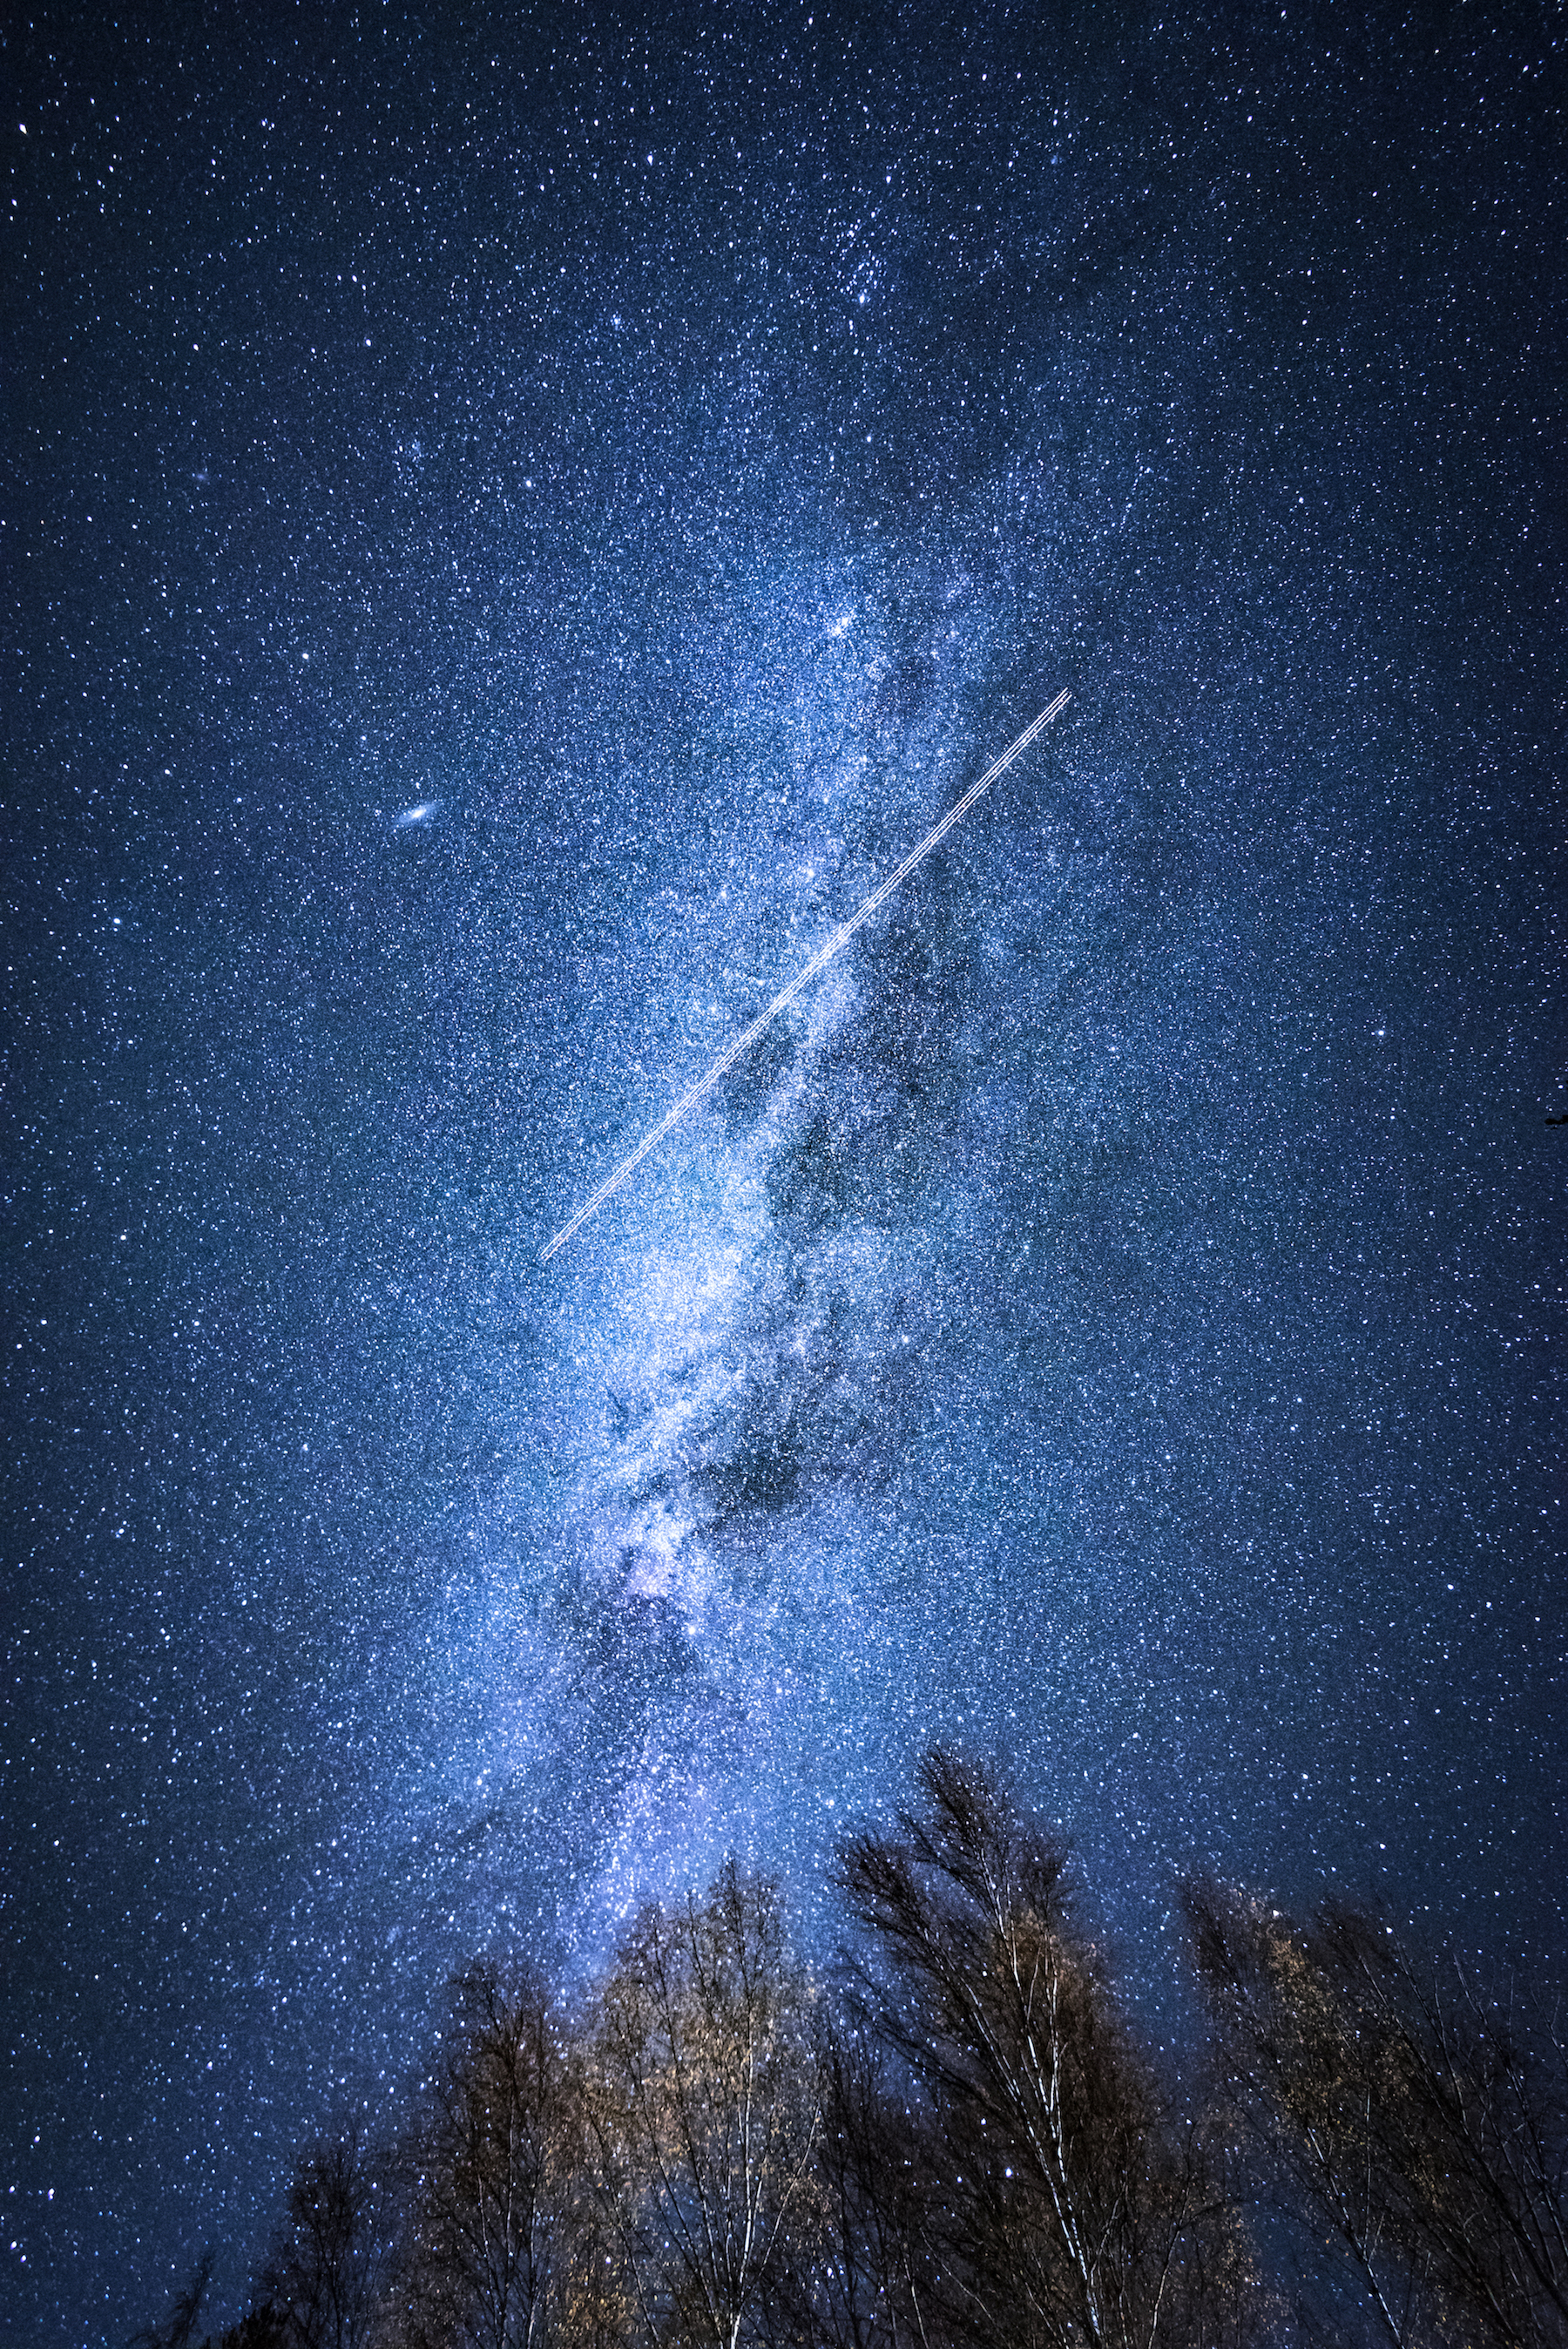 milkyway-with-plane-light-trail-thomas-drouault-portfolio.jpg